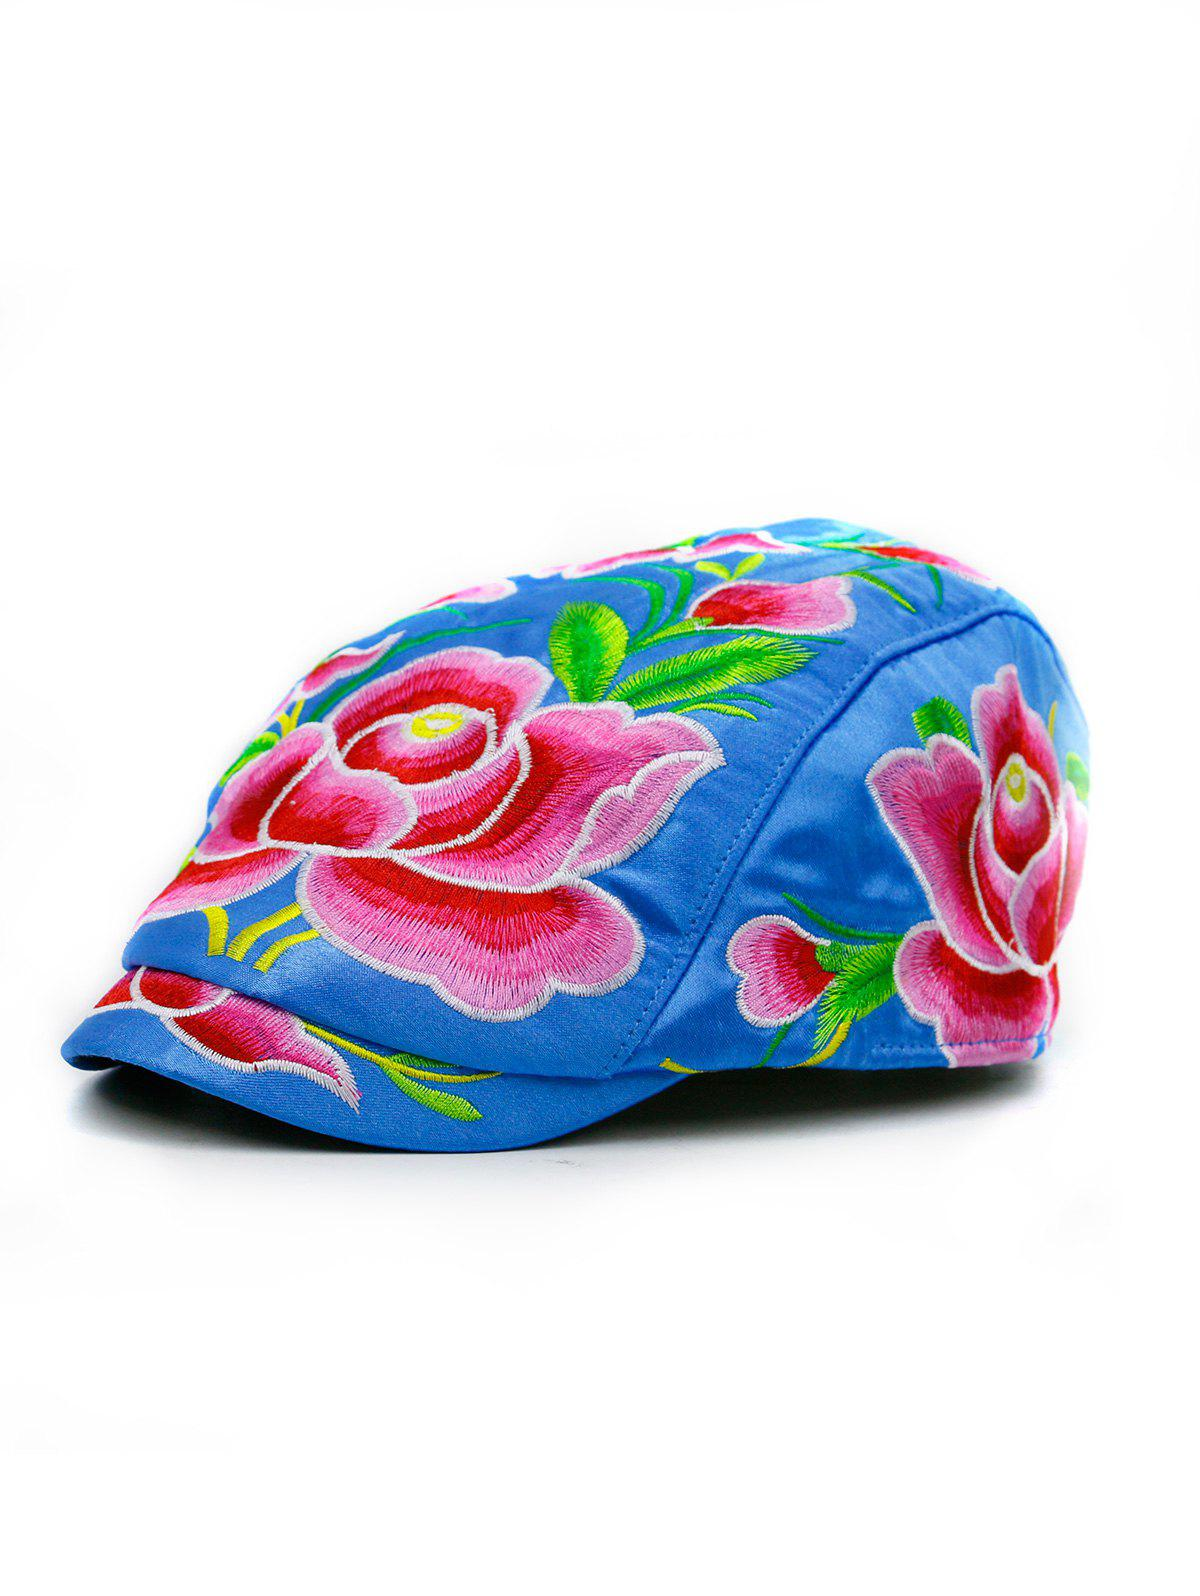 Lotus Flower Embroidered Ivy Hat - SKY BLUE